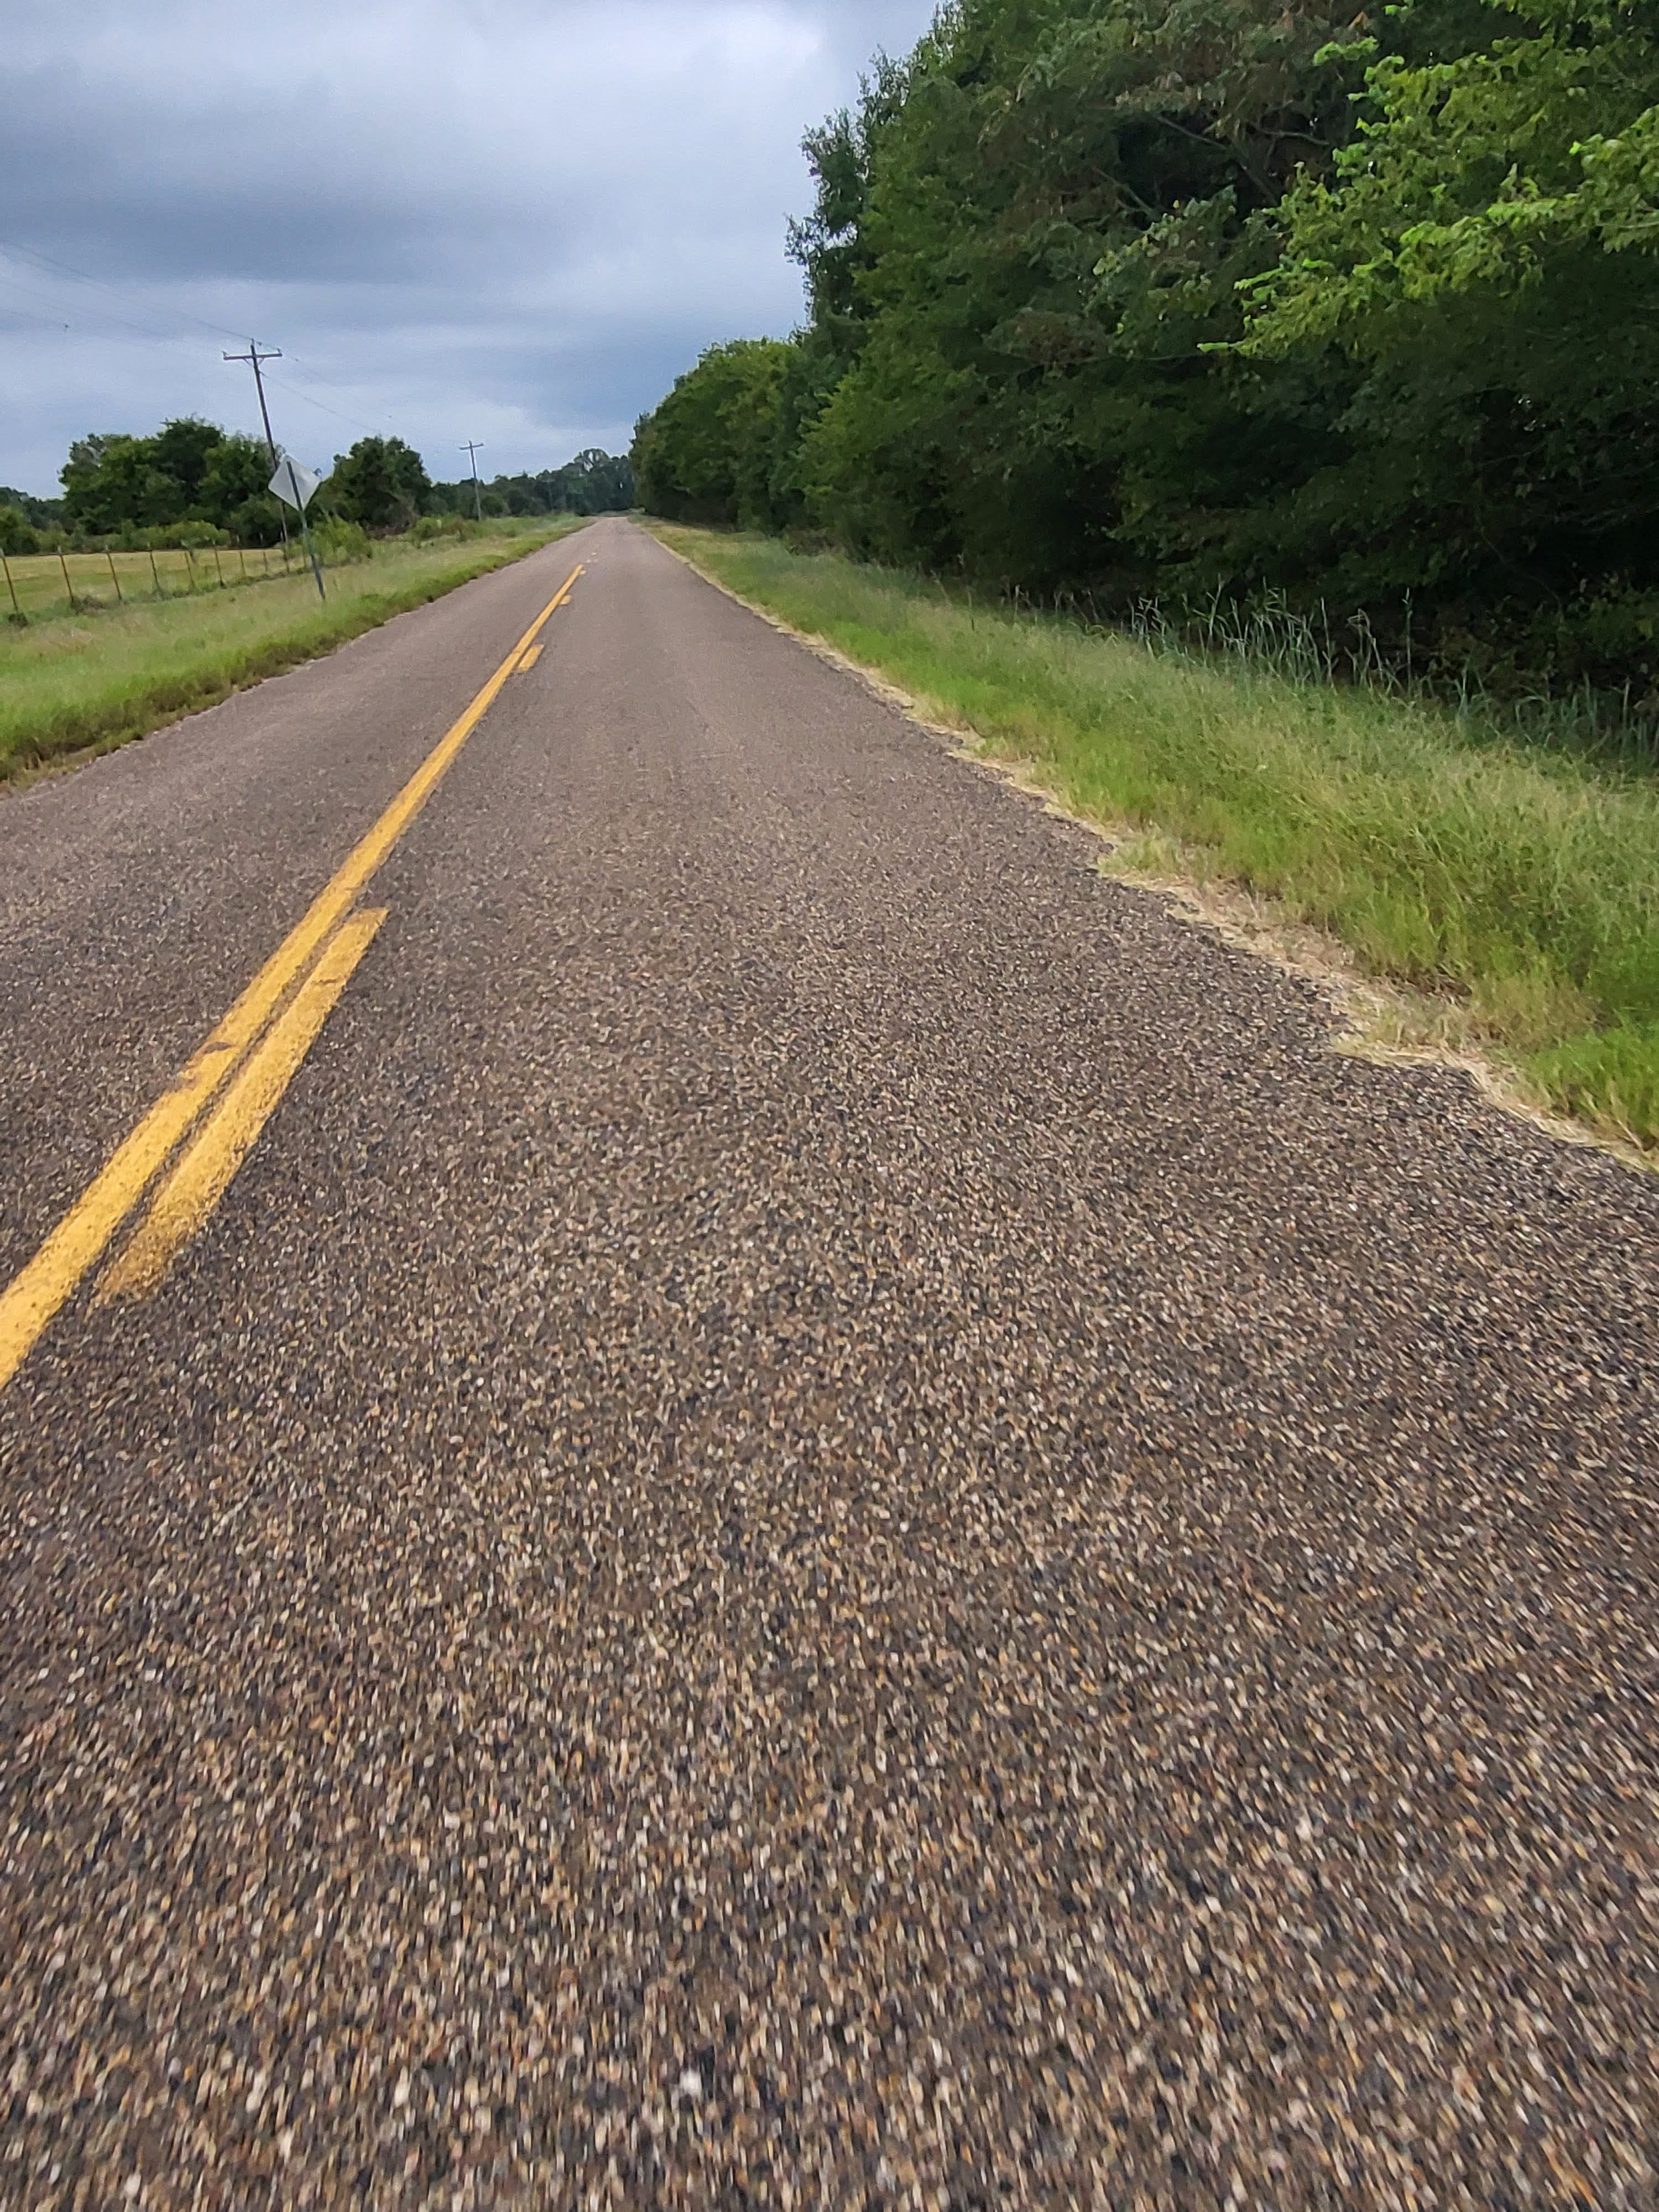 A shot of the road, taken while riding